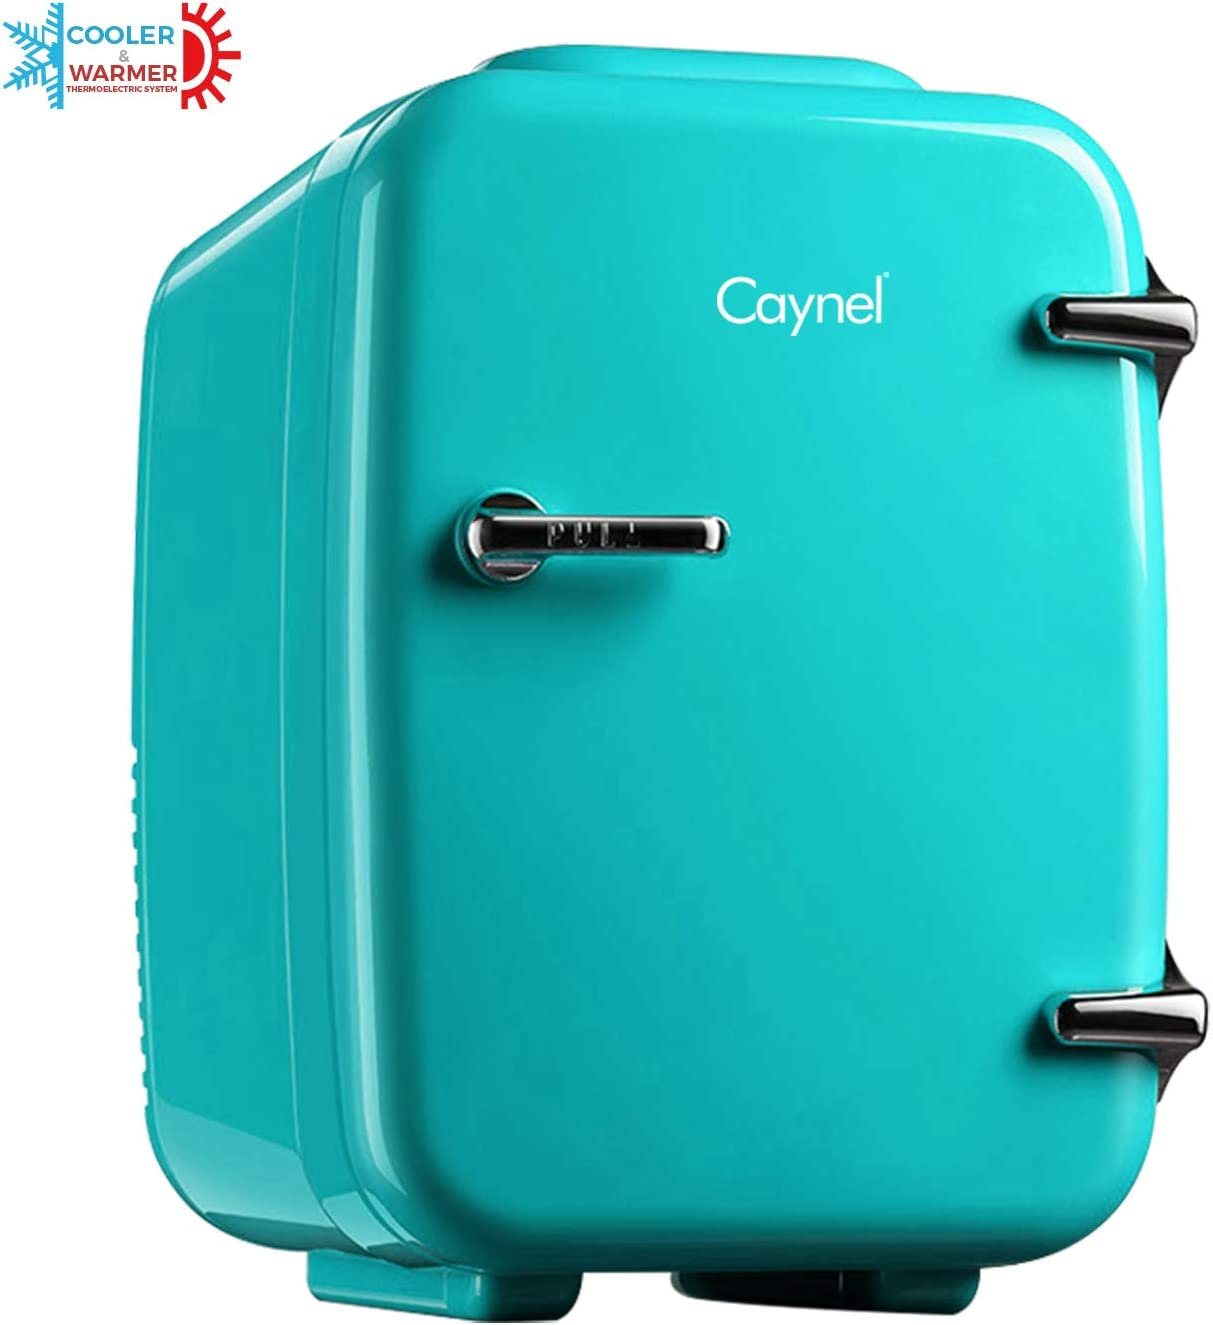 CAYNEL Mini Fridge Cooler and Warmer, (4Liter / 6Can) Portable Compact Personal Fridge, AC/DC Thermoelectric System, 100% Freon-Free Eco Friendly for Home